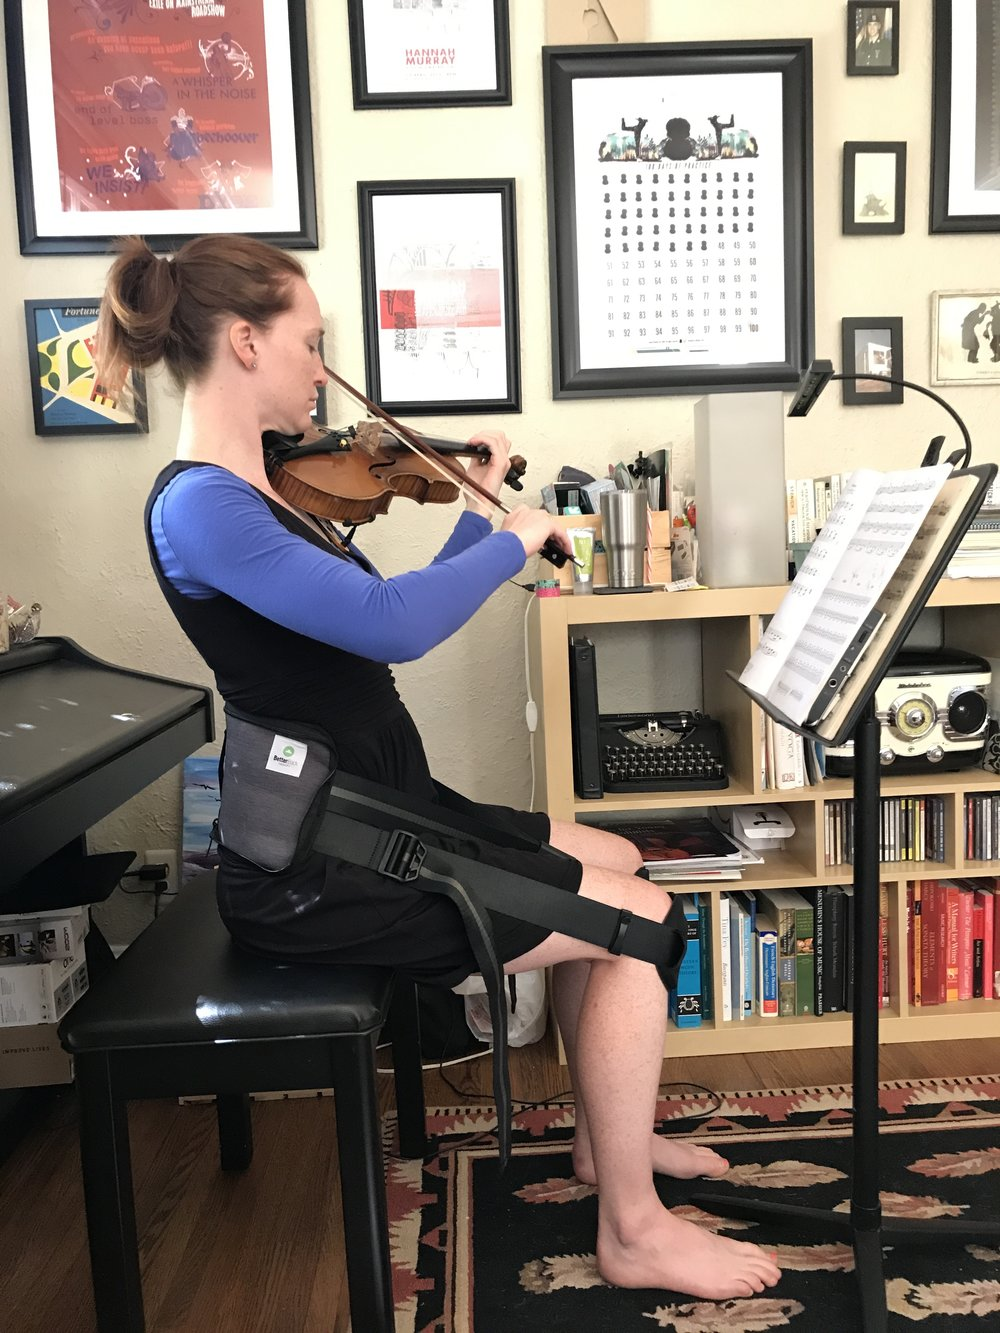 Sometimes when I'm tired, I like to sit down while I'm practicing BUT I don't want to slouch so I use the better back to help.